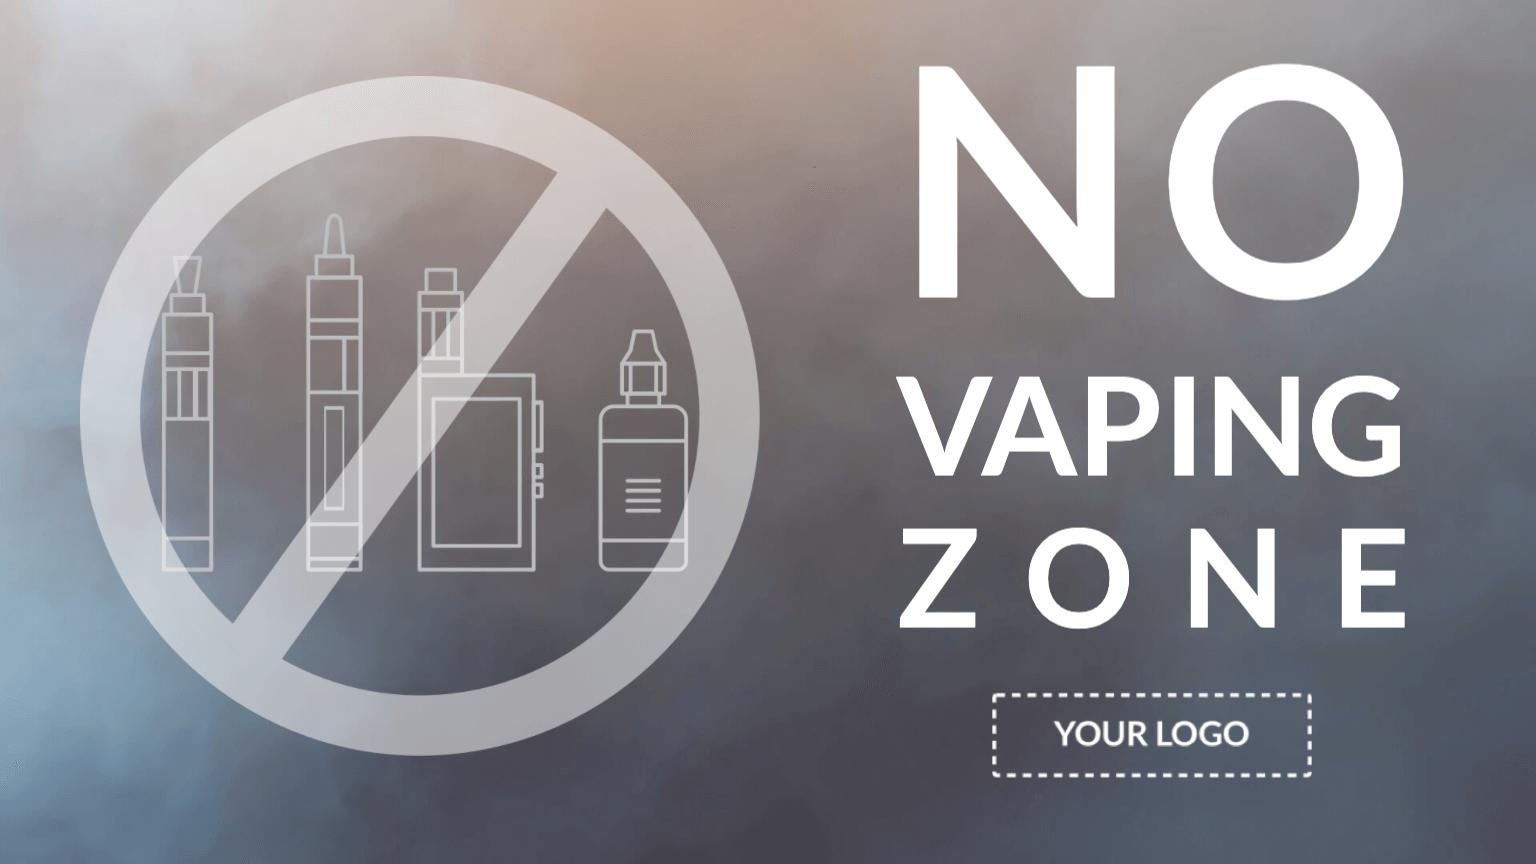 Campaign No Vaping Digital Signage Template